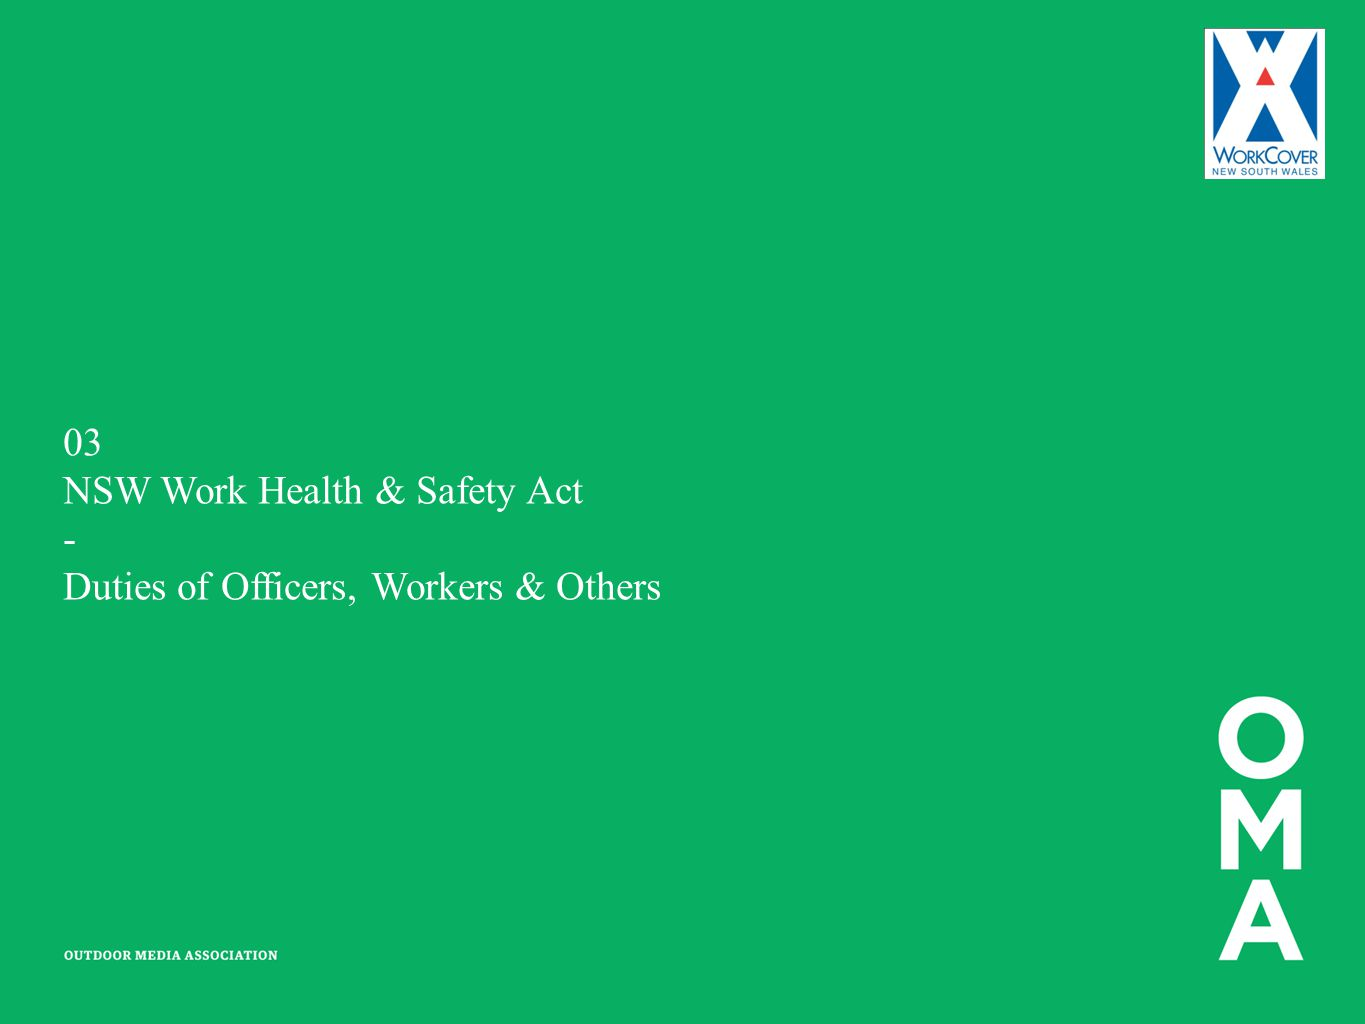 NSW Work Health & Safety Act - Duties of Officers, Workers & Others